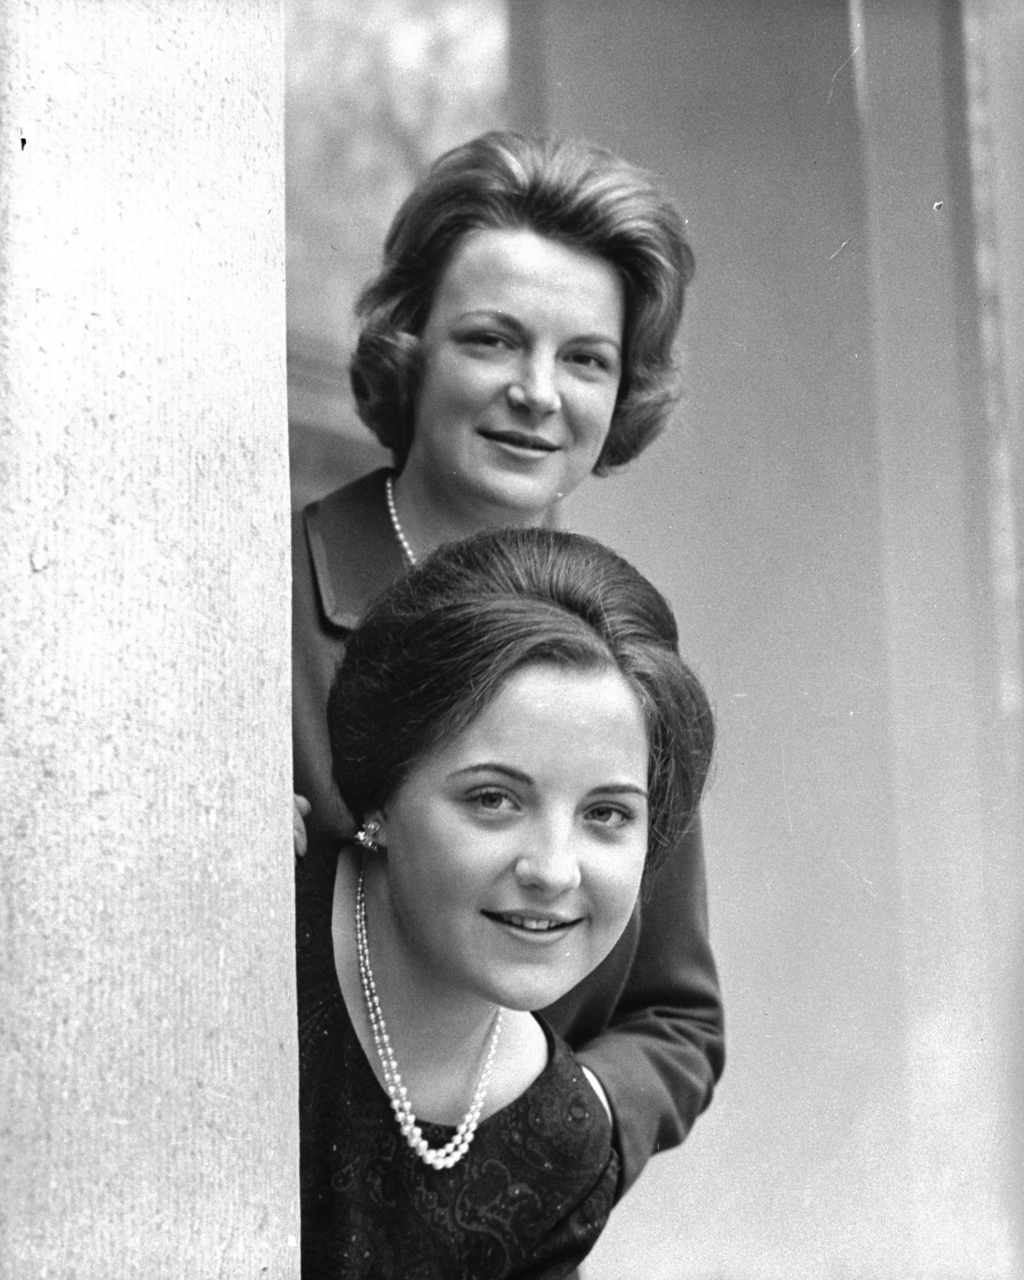 Prinses Irene en prinses Margriet in 1962. Nationaal Archief  © BDU media